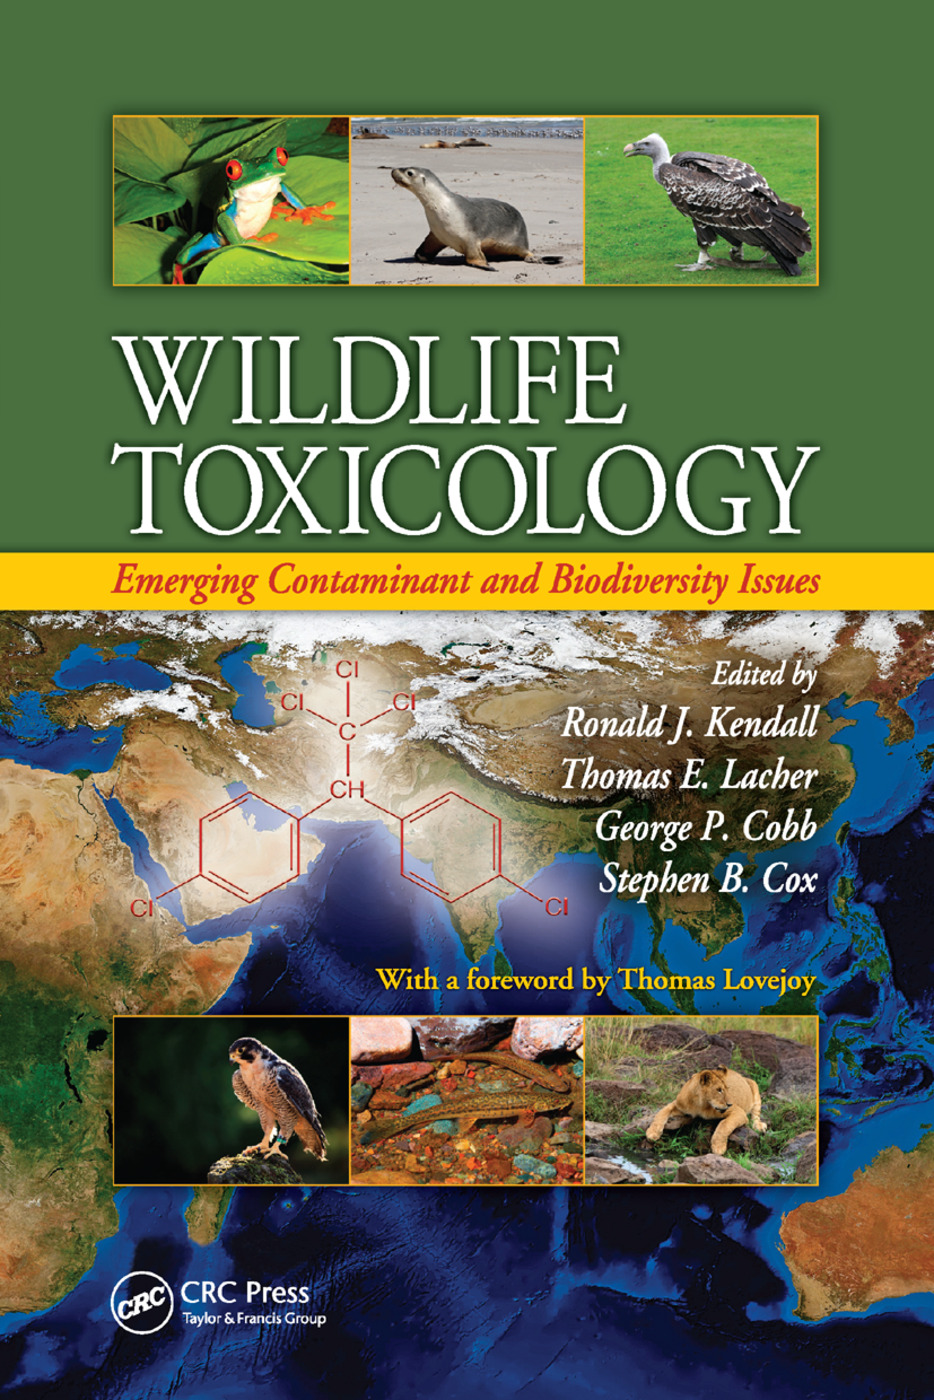 Wildlife Toxicology: Emerging Contaminant and Biodiversity Issues, 1st Edition (Paperback) book cover